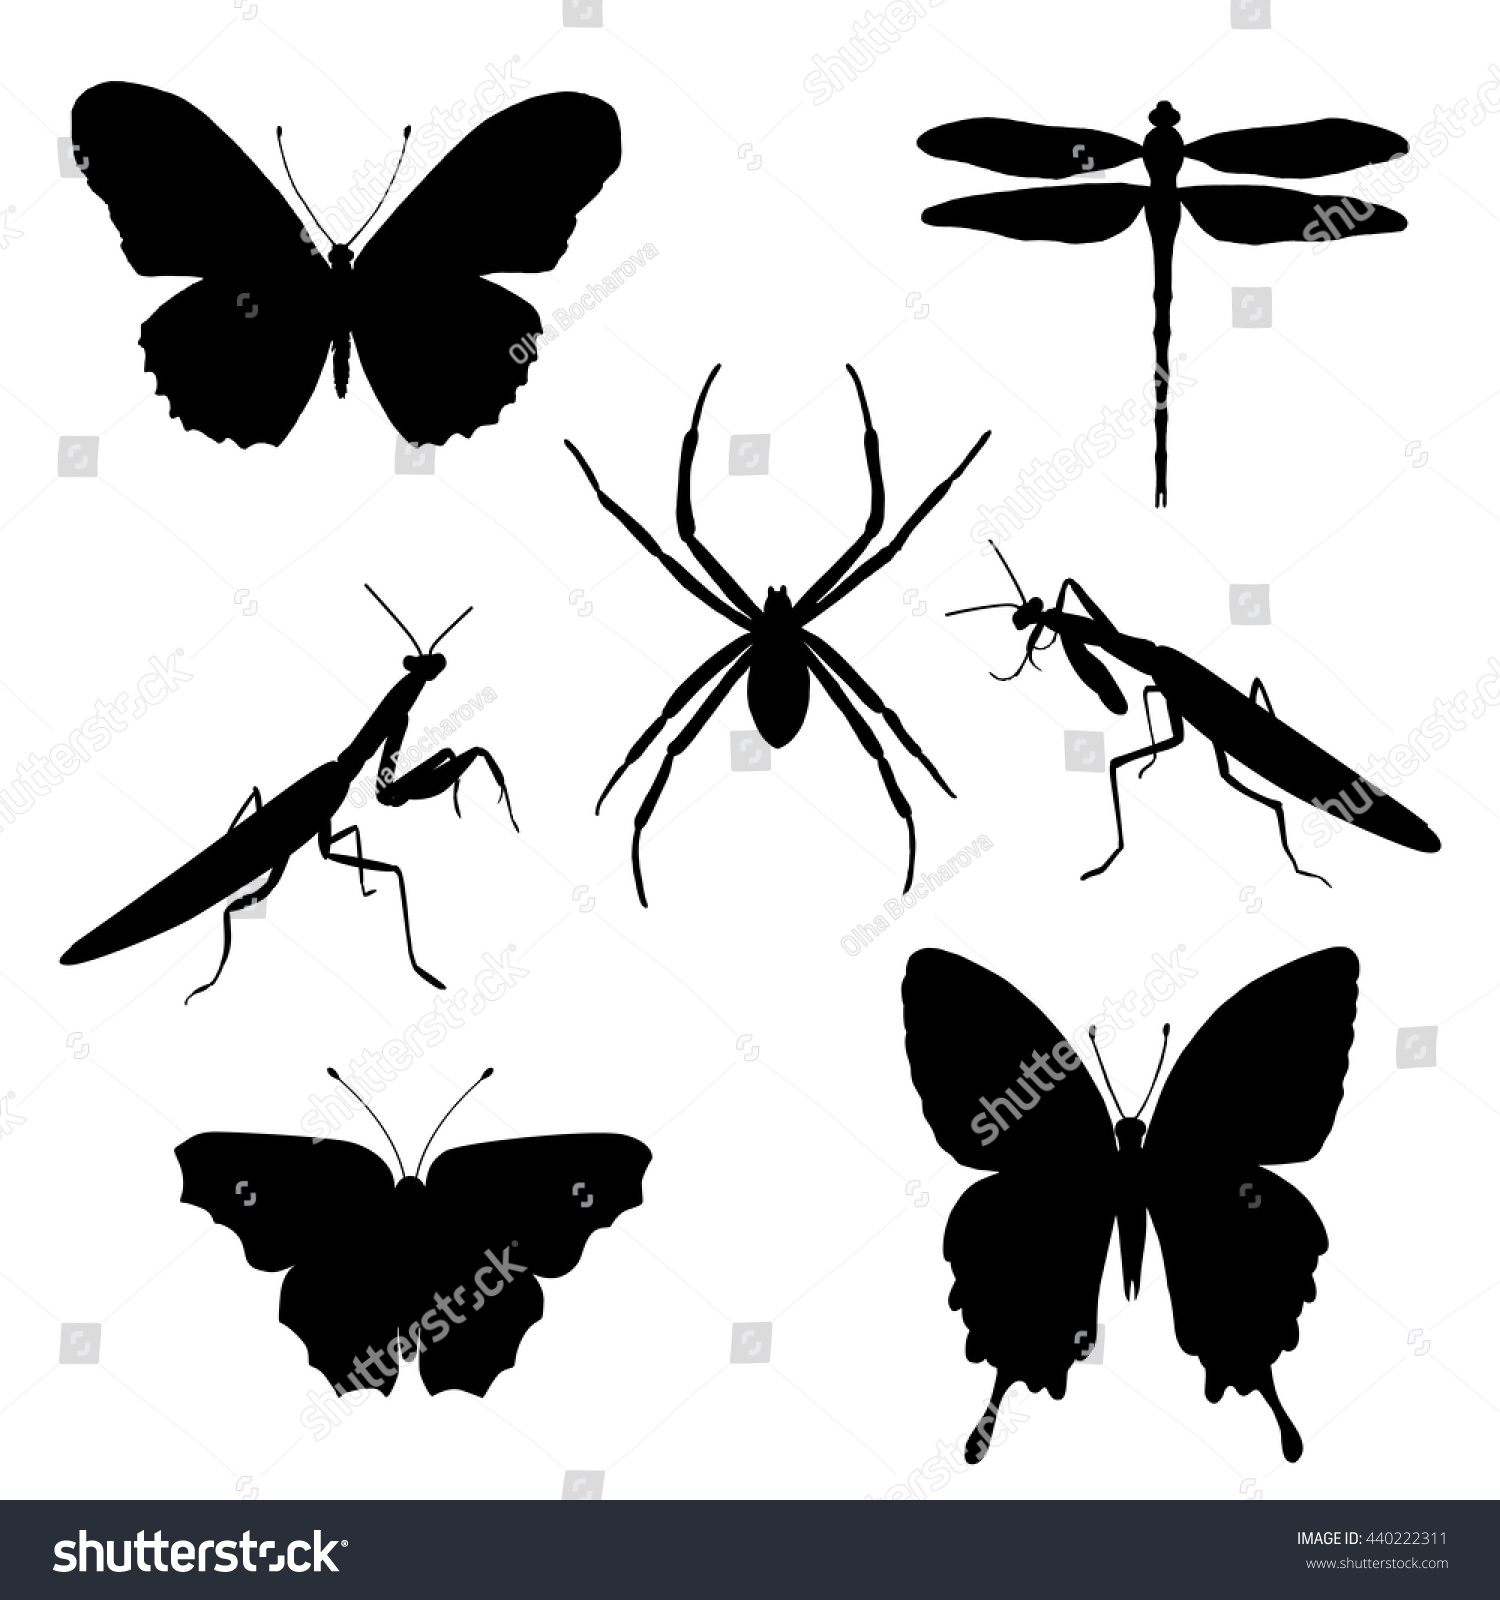 insects insect and butterflies Smithsonian information on anthropology, archaeology, egyptian, evolution, biodiviersity, rainforests, conservation, environment, ecology, botany, plants, gardens.